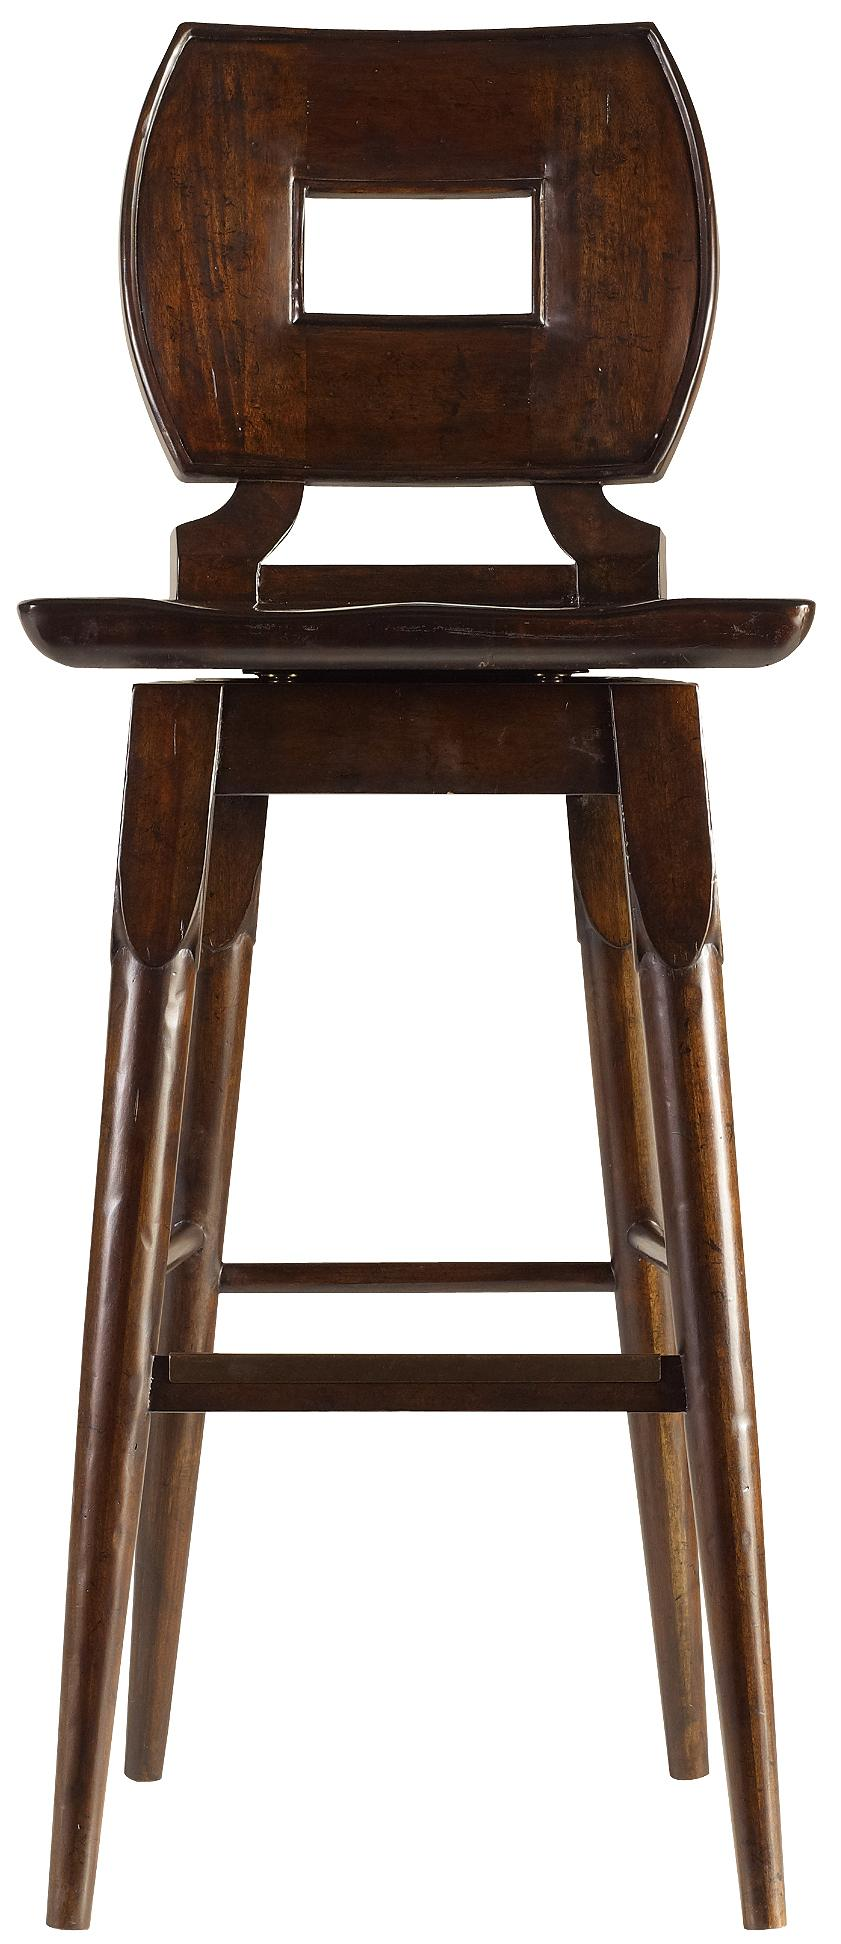 Stanley Furniture The Classic Portfolio Artisan Wood Bar Stool - Item Number: 135-11-73